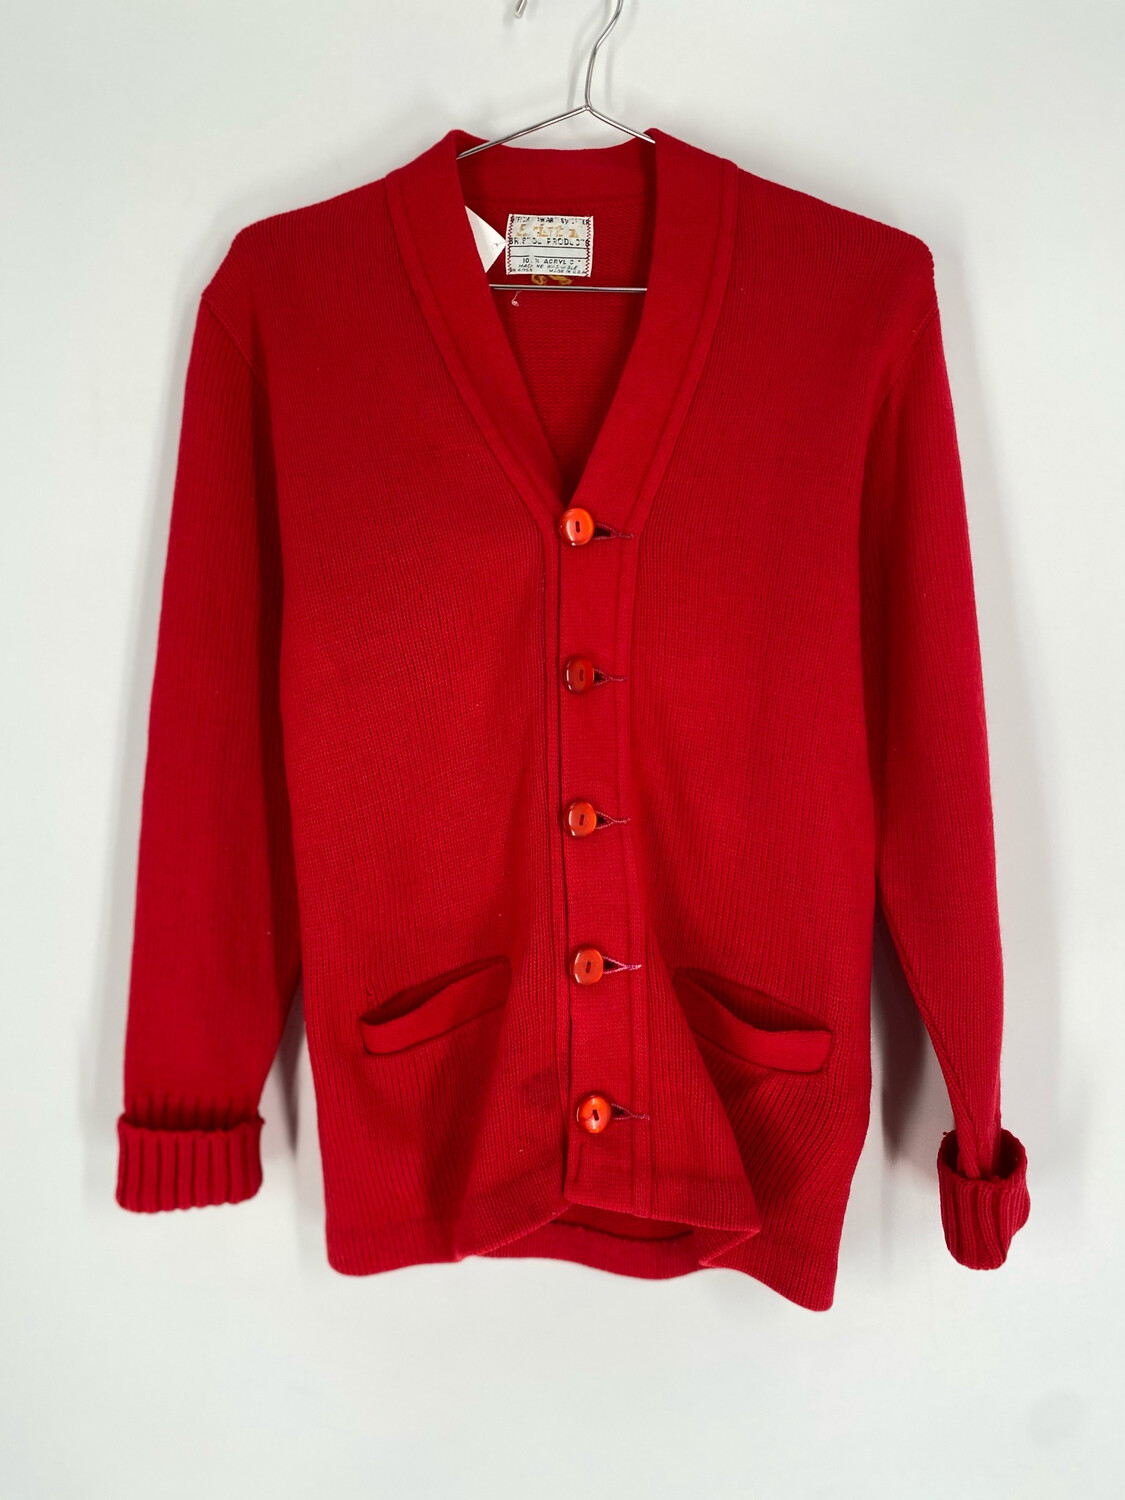 Retro Red Cardigan Size S